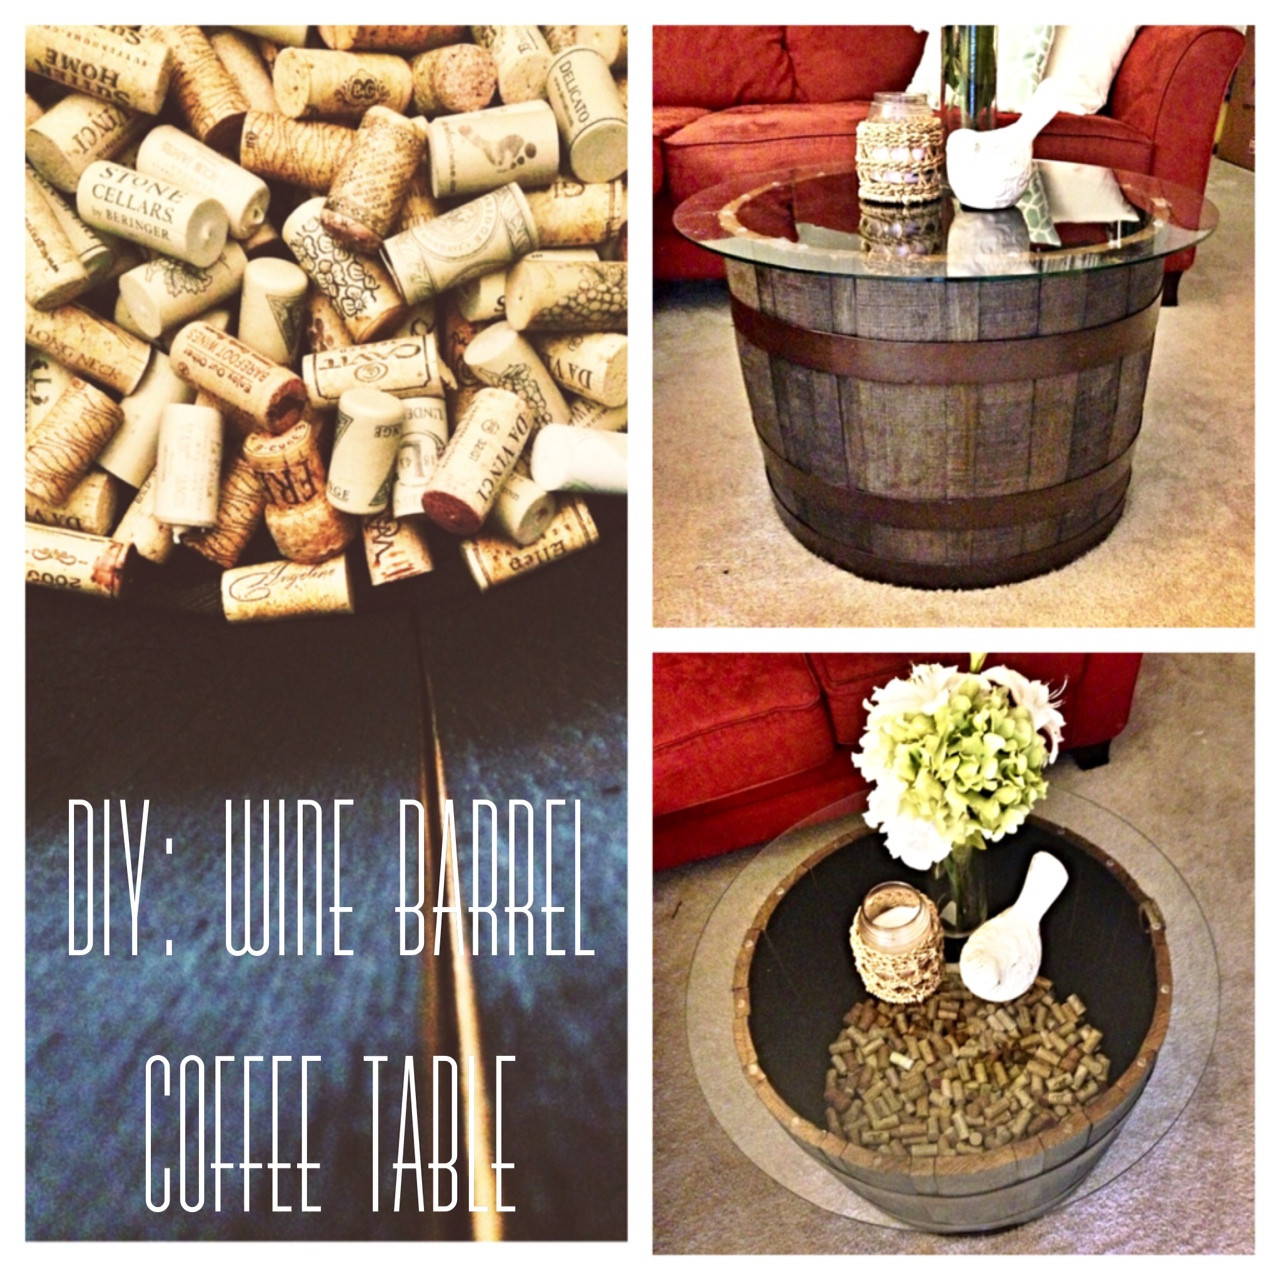 Best ideas about DIY Wine Barrel Table . Save or Pin CEVI Chion DIY Wine Barrel Coffee Table Now.